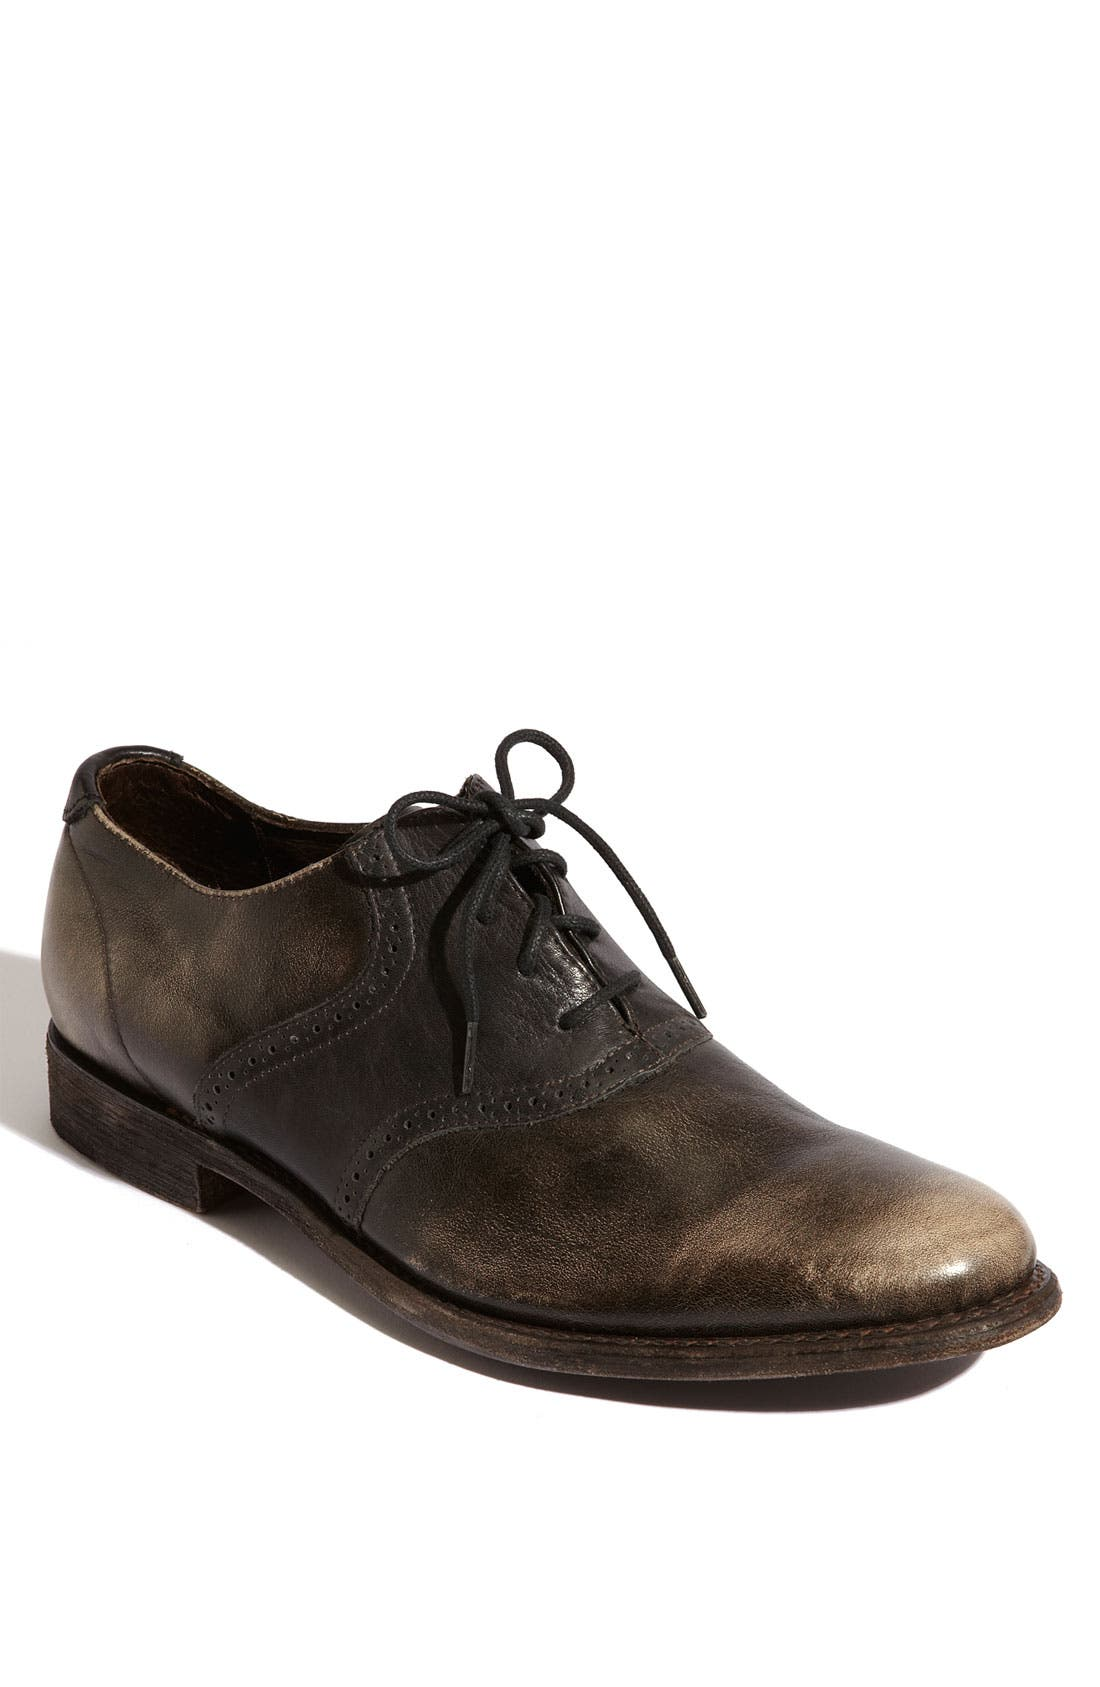 Main Image - J.D. Fisk 'Nikko' Saddle Shoe